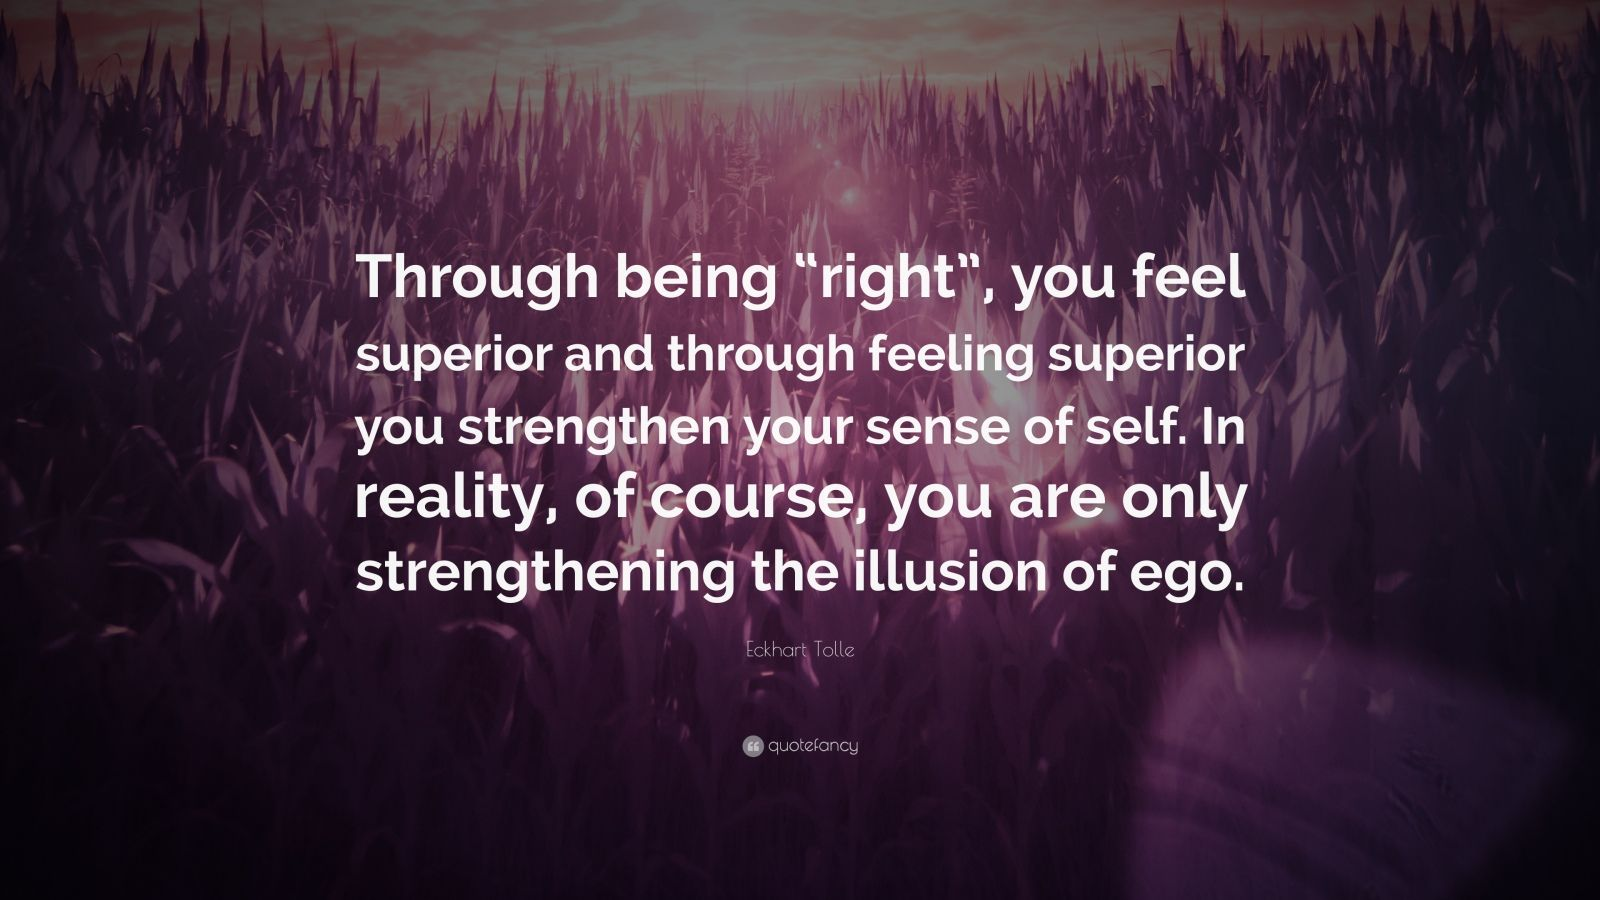 """Eckhart Tolle Quote: """"Through being """"right"""", you feel superior and through feeling superior you strengthen your sense of self. In reality, of course, you are only strengthening the illusion of ego."""""""